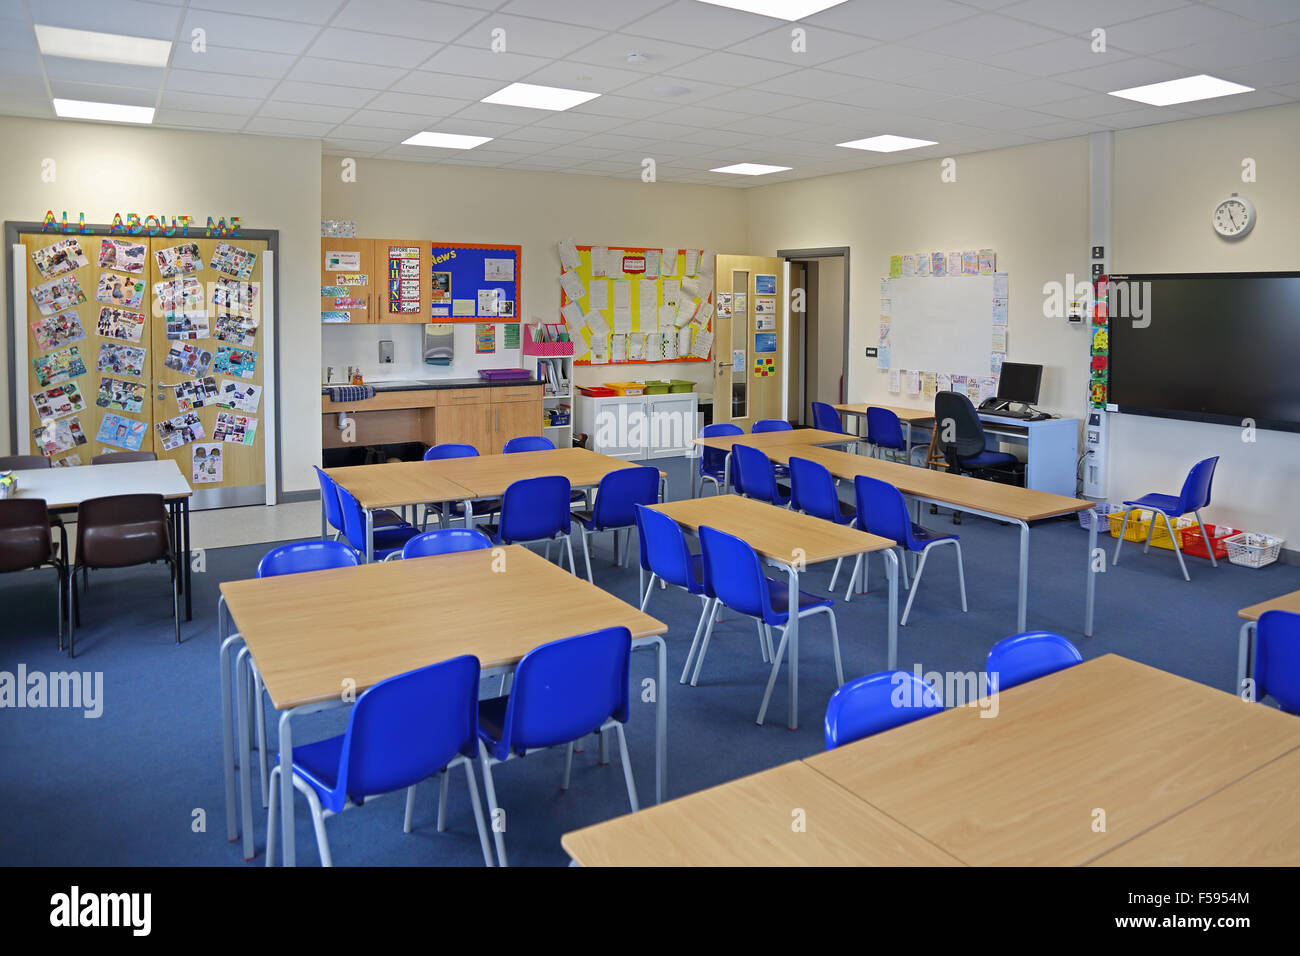 Classroom Ideas Uk ~ A classroom in newly built uk junior school shows desks